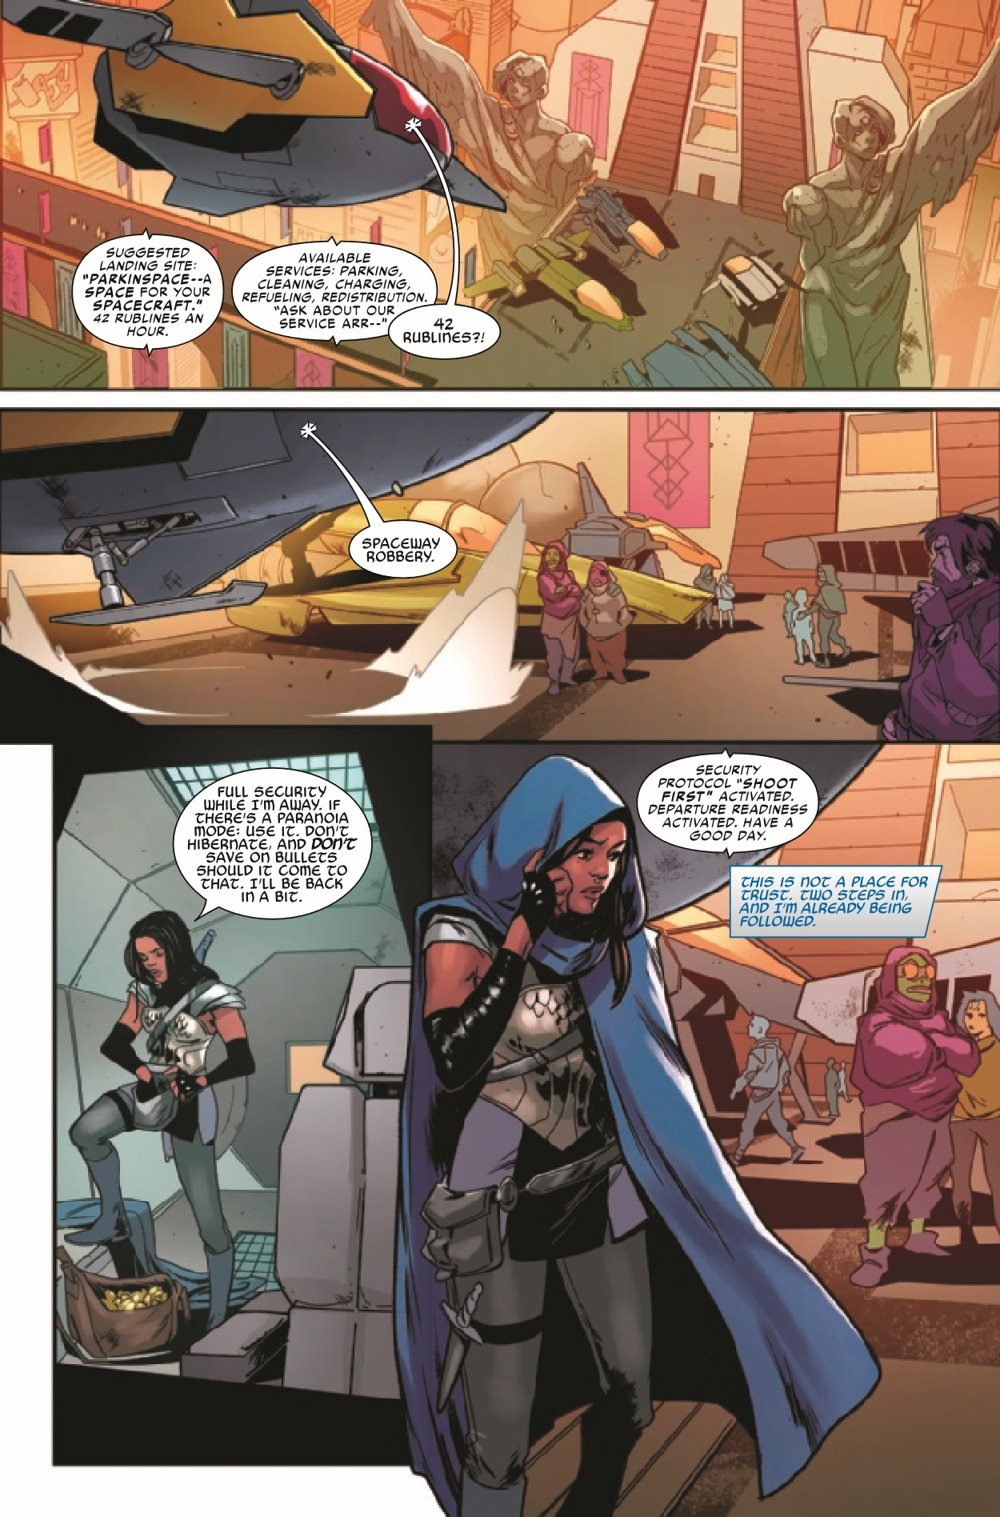 MIGHTYVALKYRIES2021001_Preview-7 ComicList Previews: THE MIGHTY VALKYRIES #1 (OF 5)